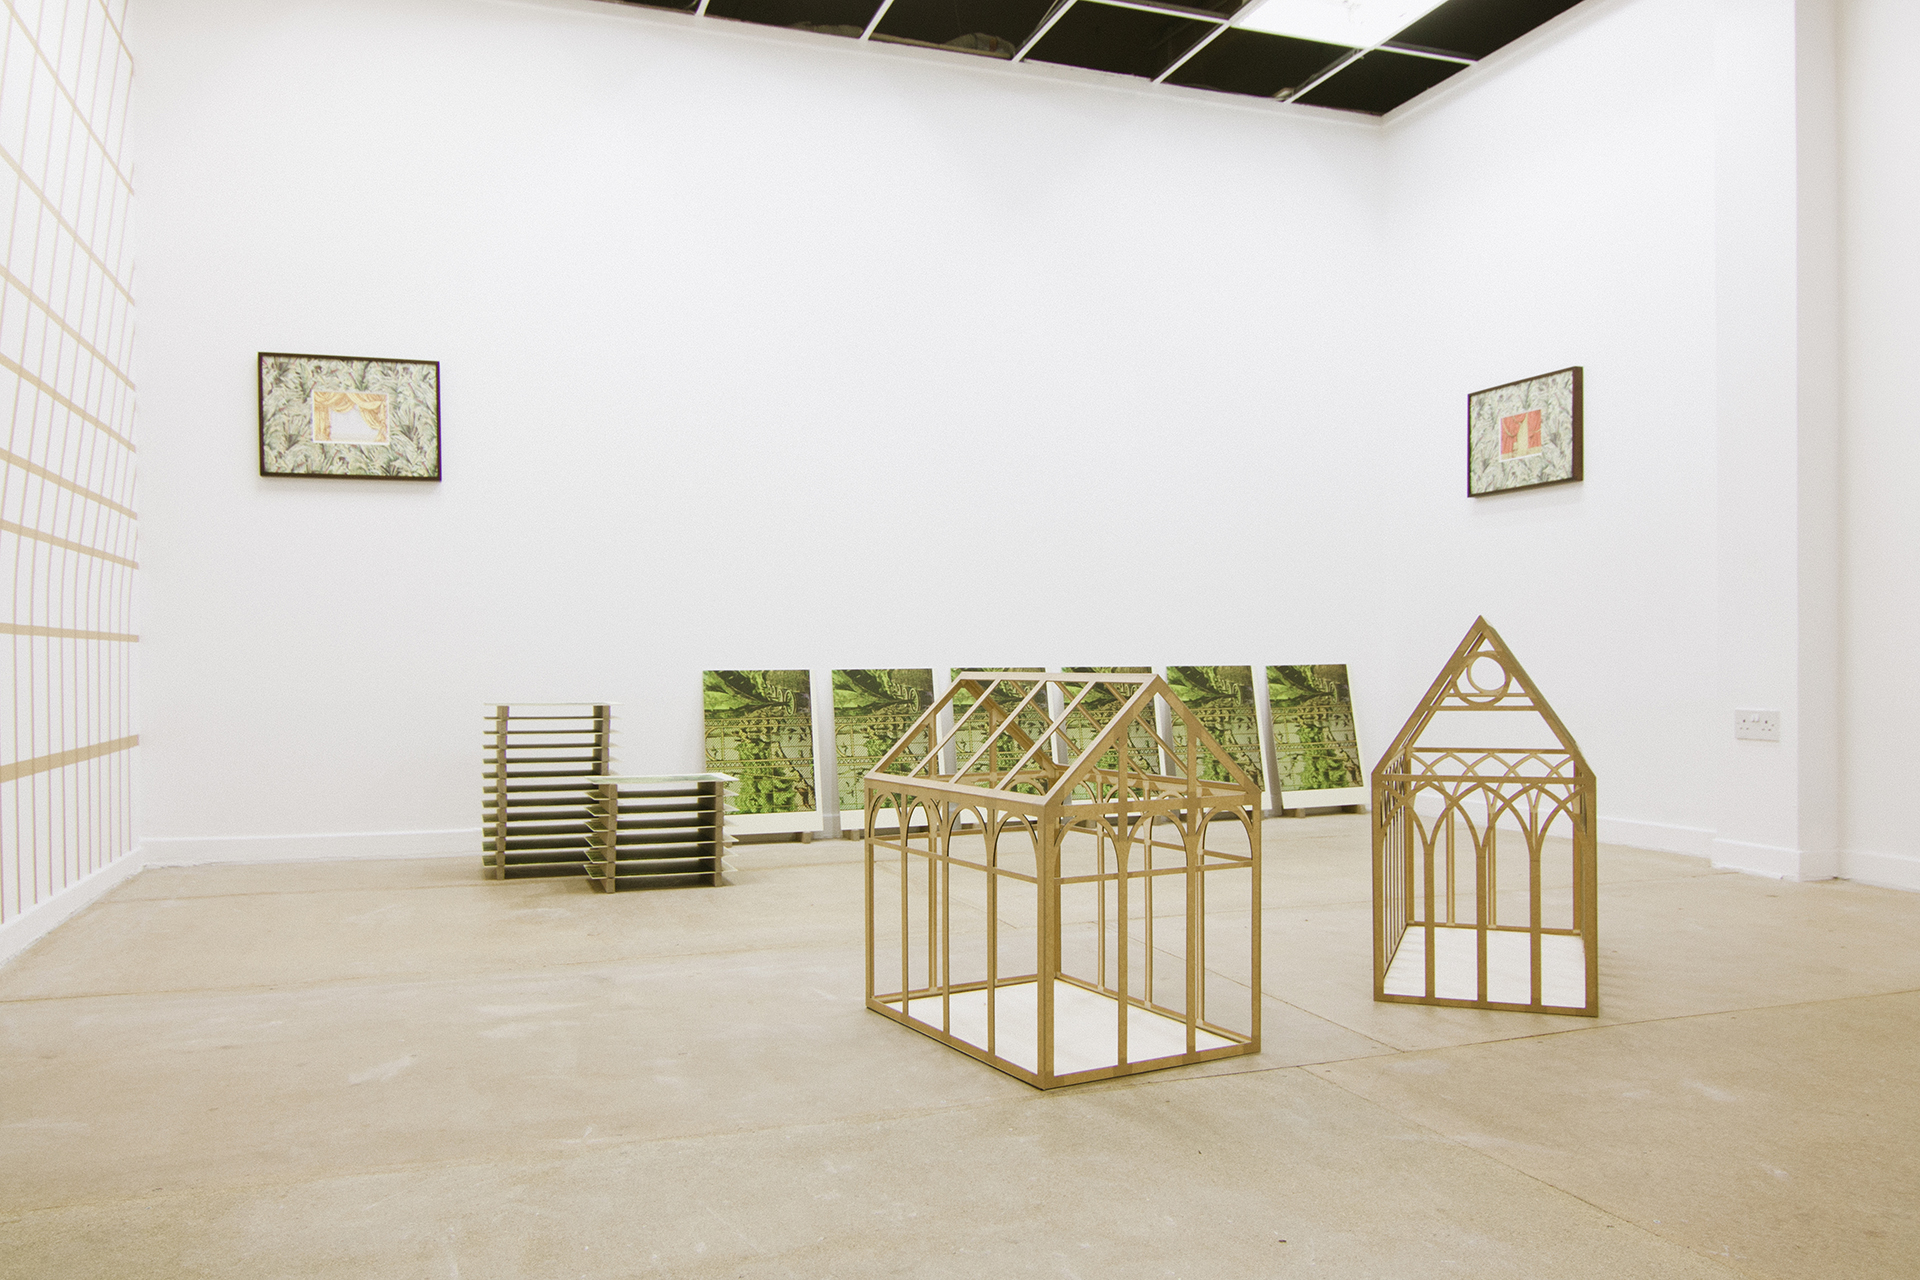 Elizabeth Corkery, Small Decors (installation view), 2014, Plywood, screenprint on MDF, gouche on paper, tape. Dimensions variable